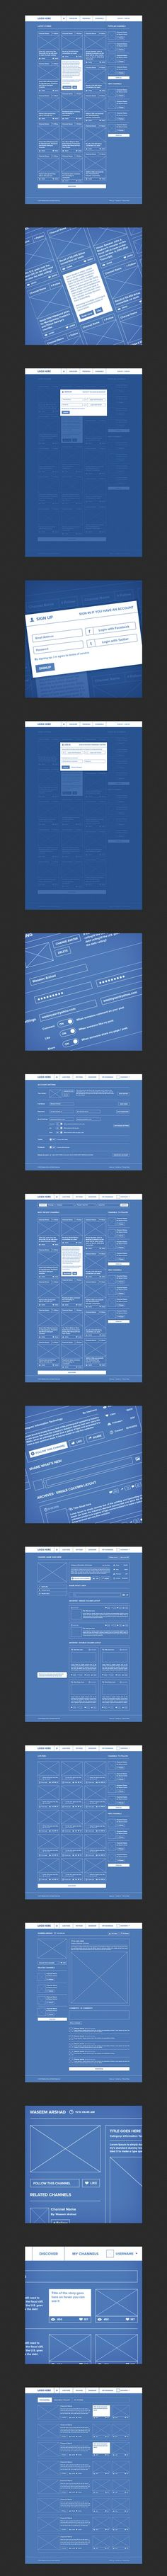 11 best Mobile App Flowchart images on Pinterest | Flowchart, Mobile ...